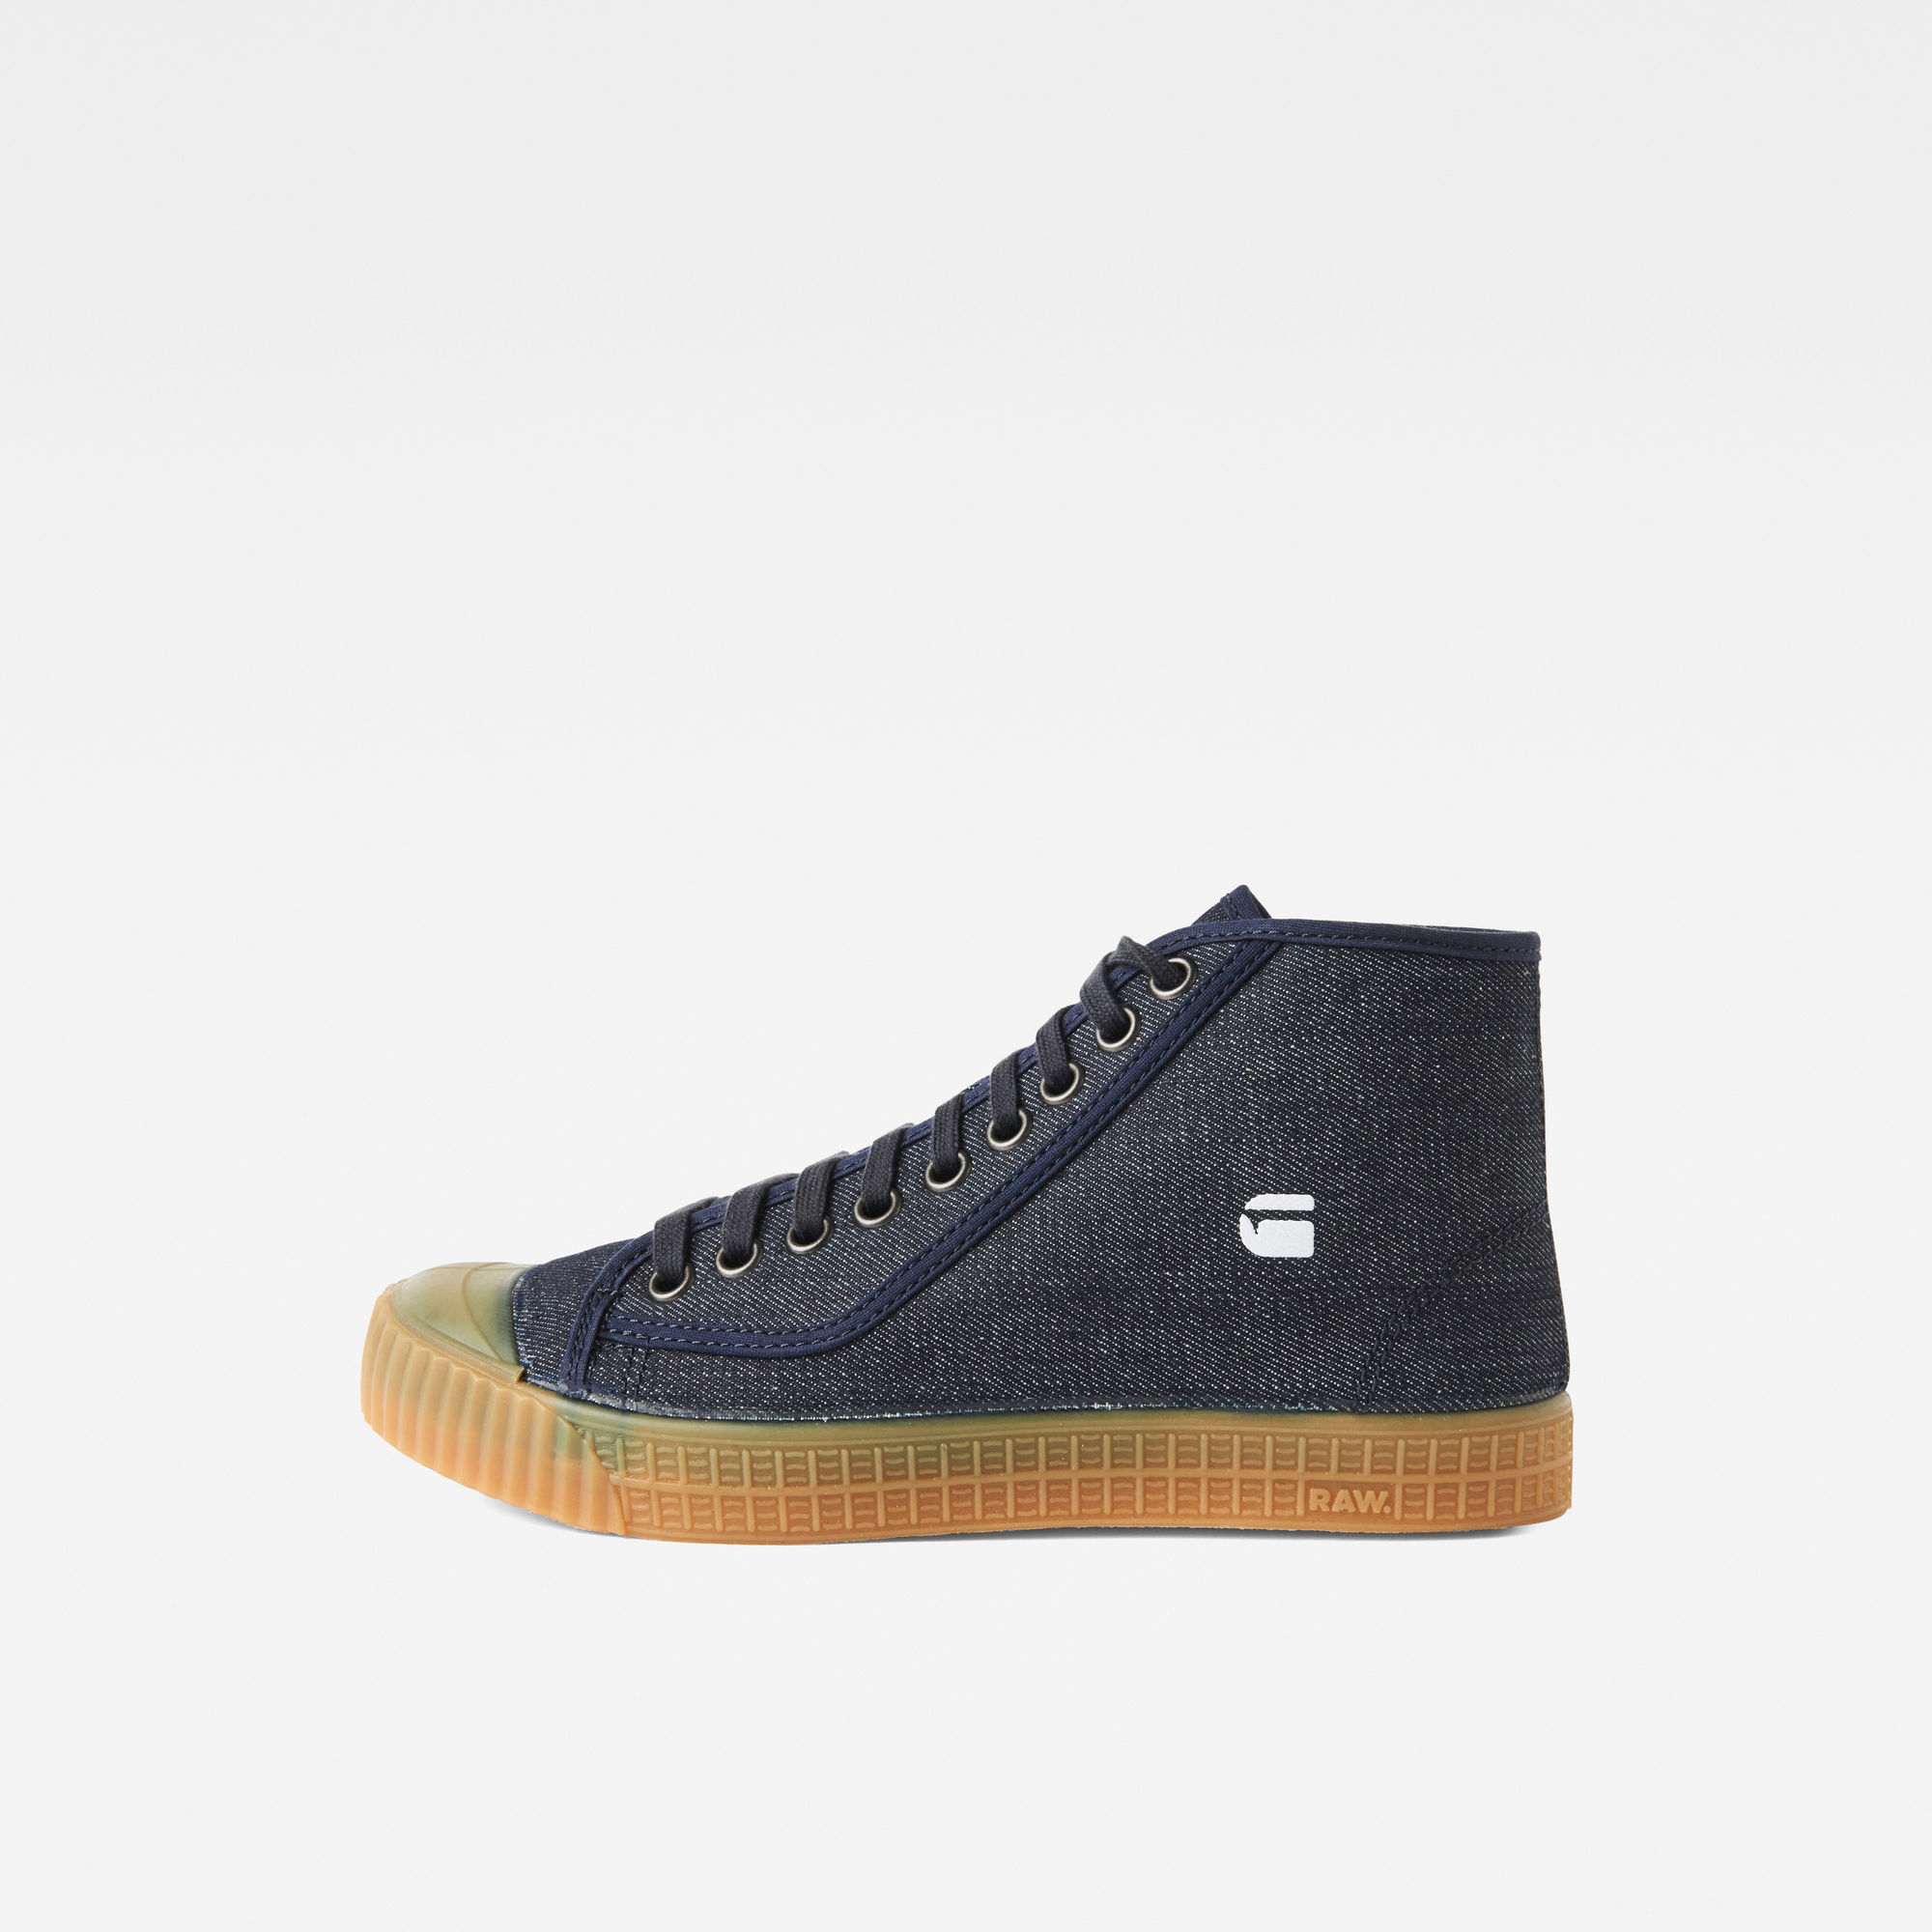 Image of G Star Raw Rovulc Denim Mid Sneakers